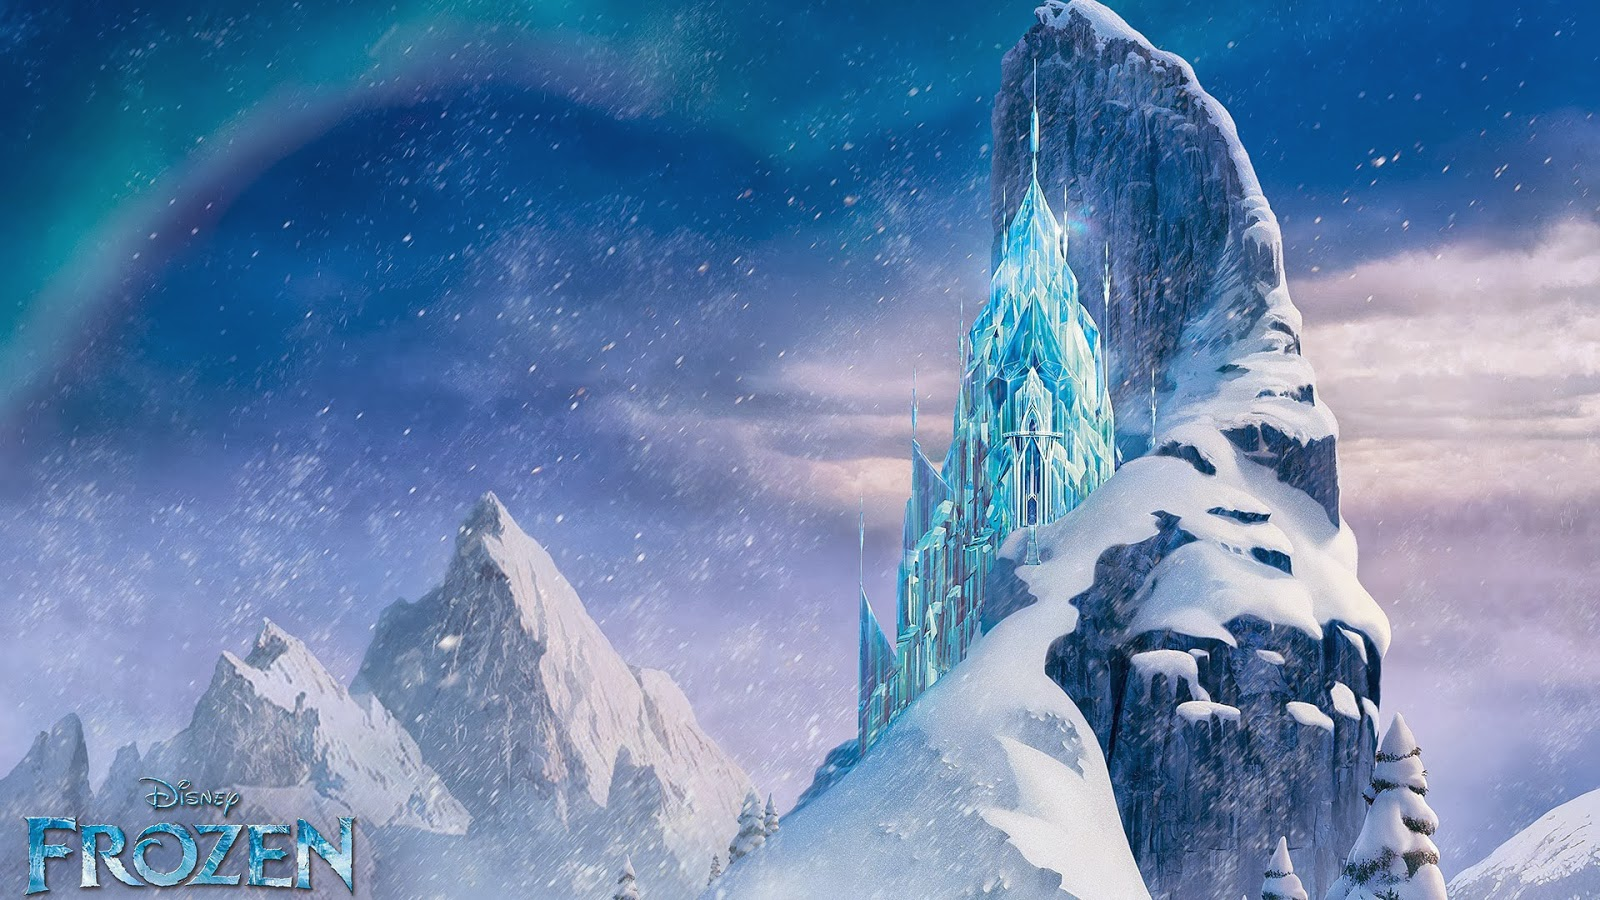 Frozen Disney Olaf Wallpaper Of disney for the young at 1600x900